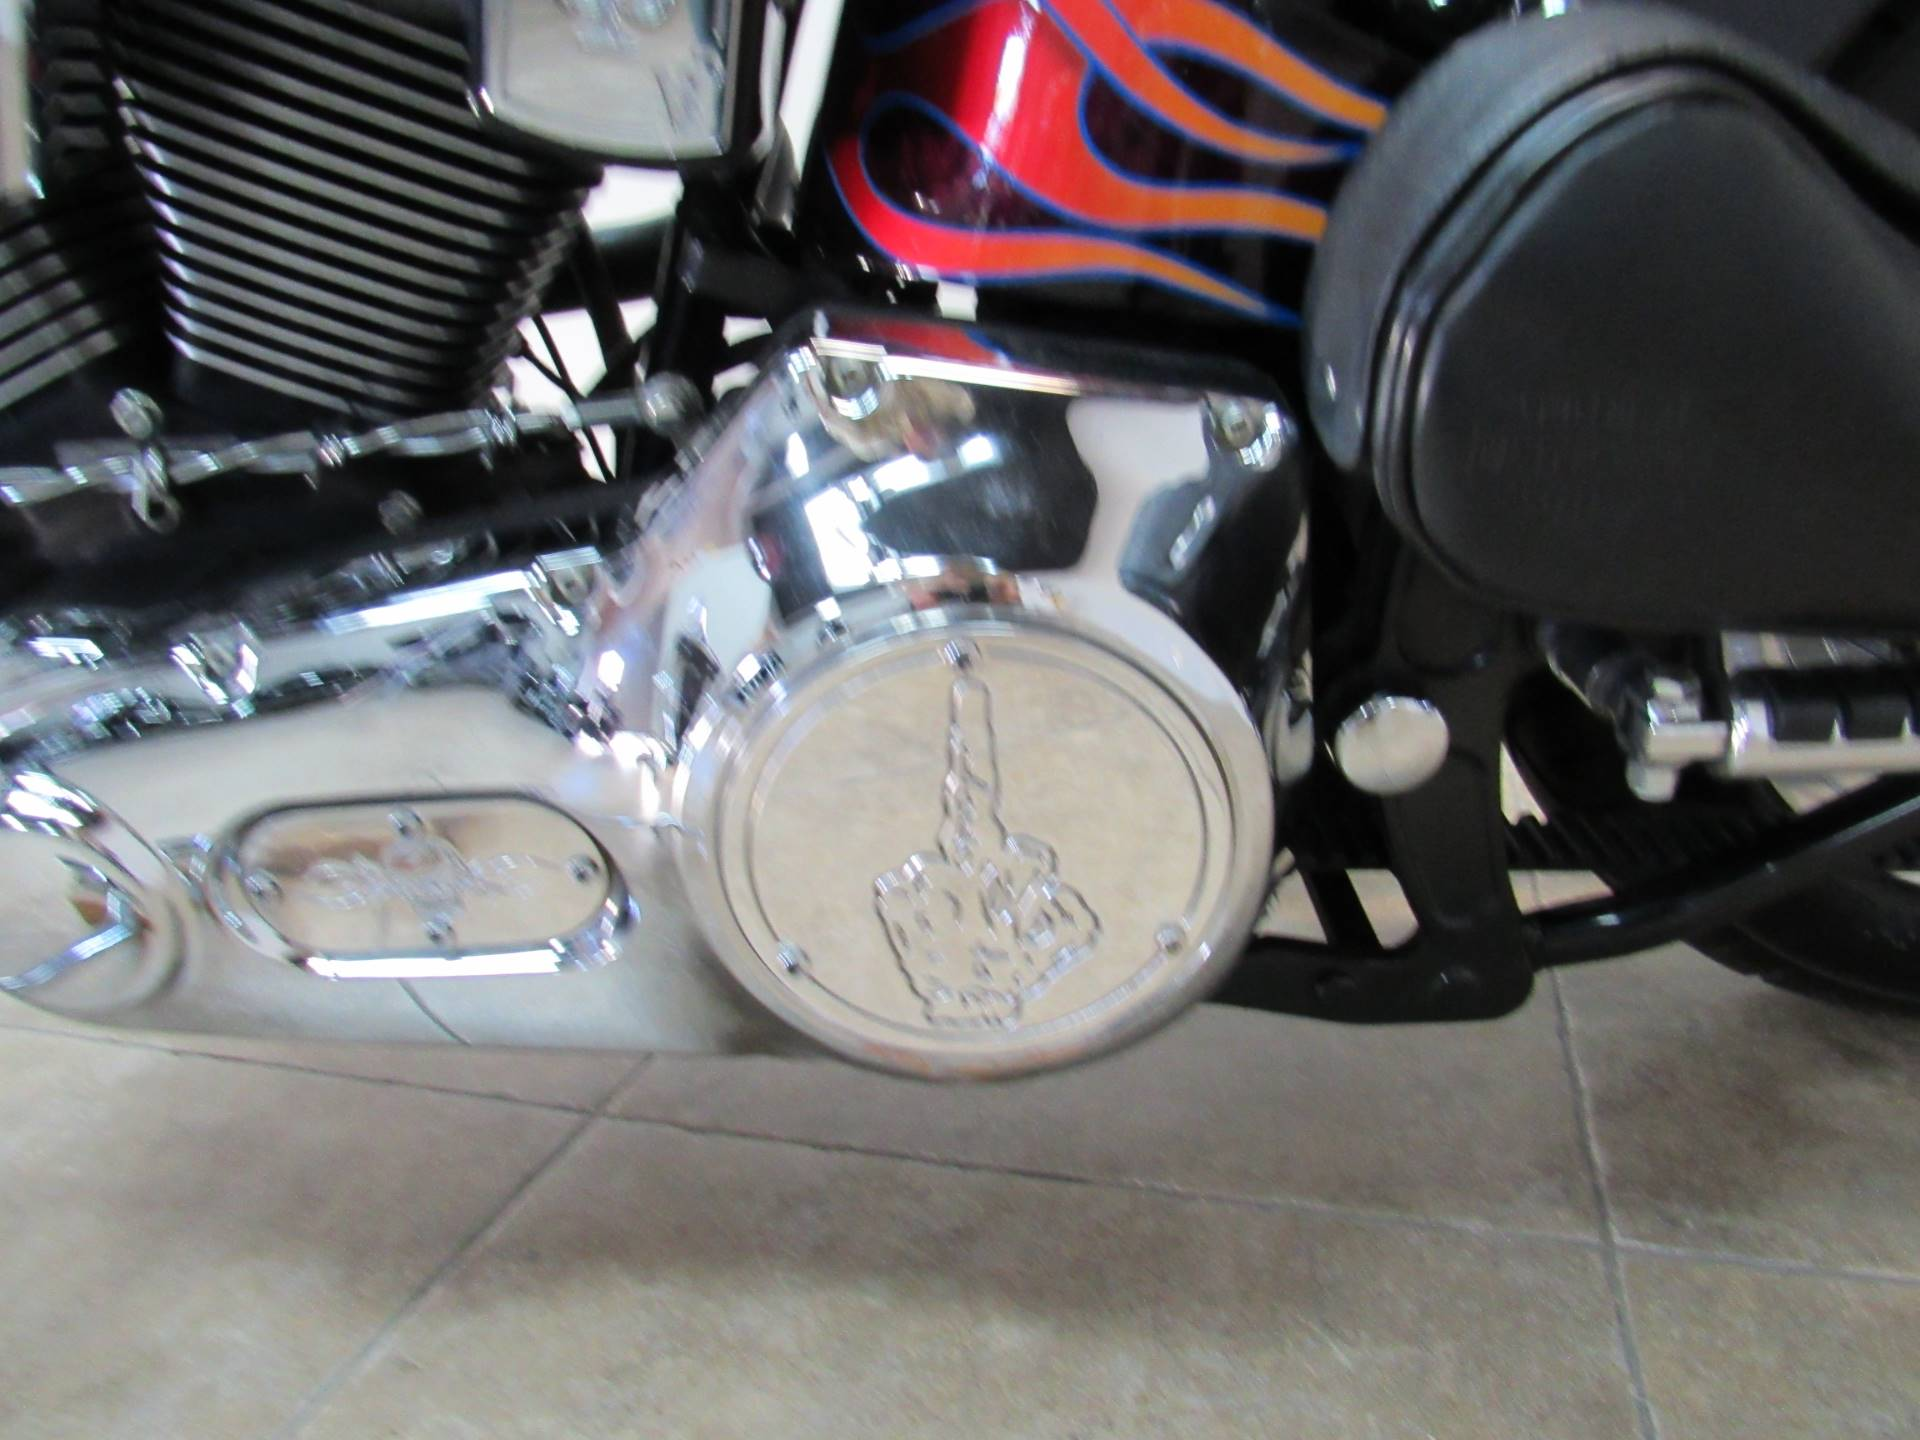 1996 Harley-Davidson softail custom in Temecula, California - Photo 41